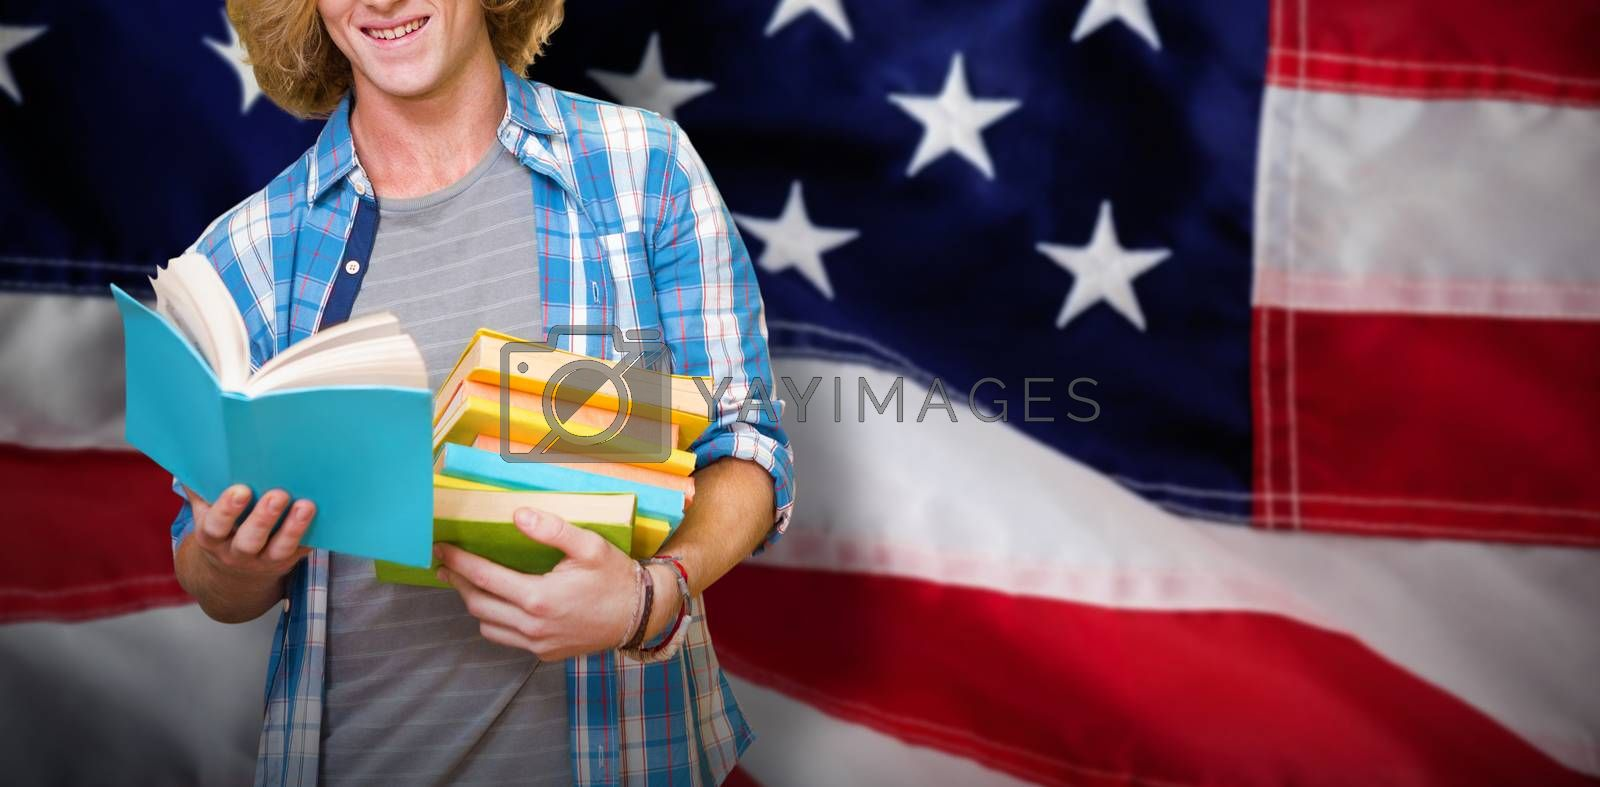 Composite image of student reading book by Wavebreakmedia